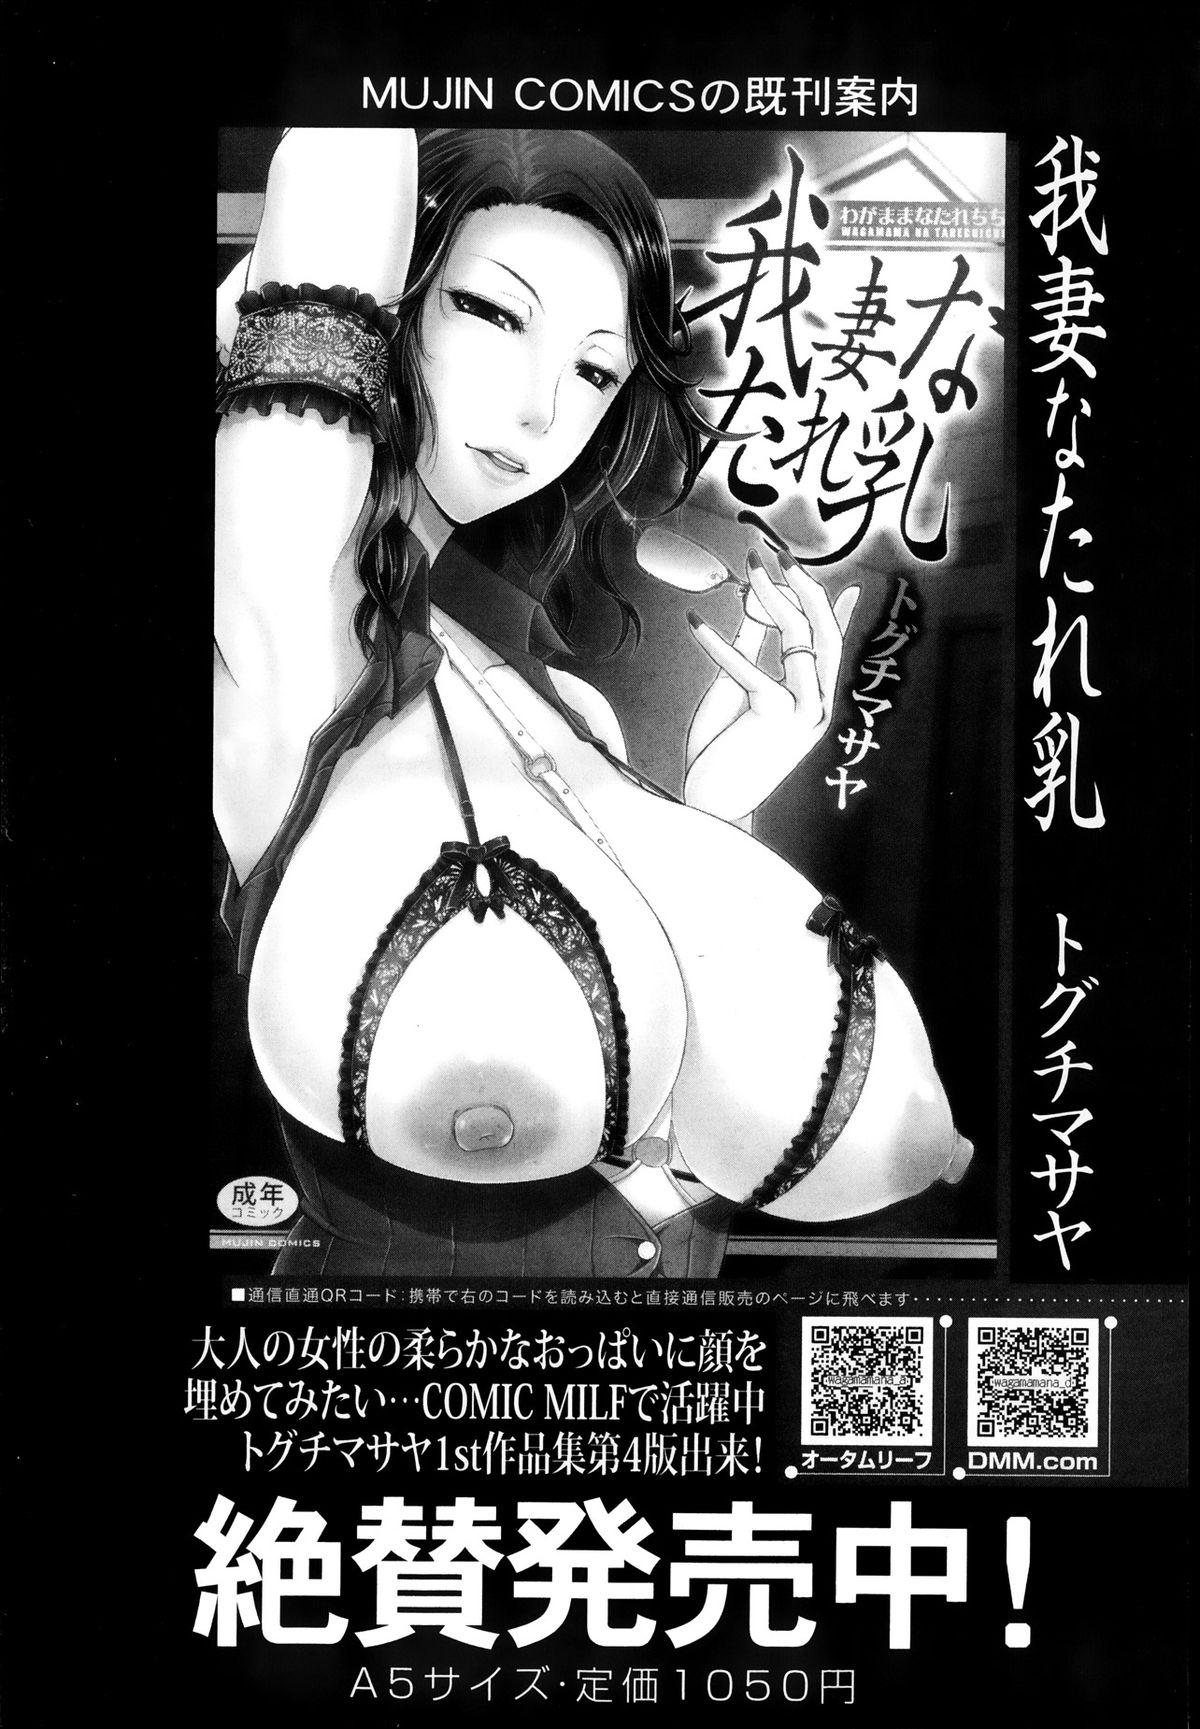 BUSTER COMIC 2013-11 129